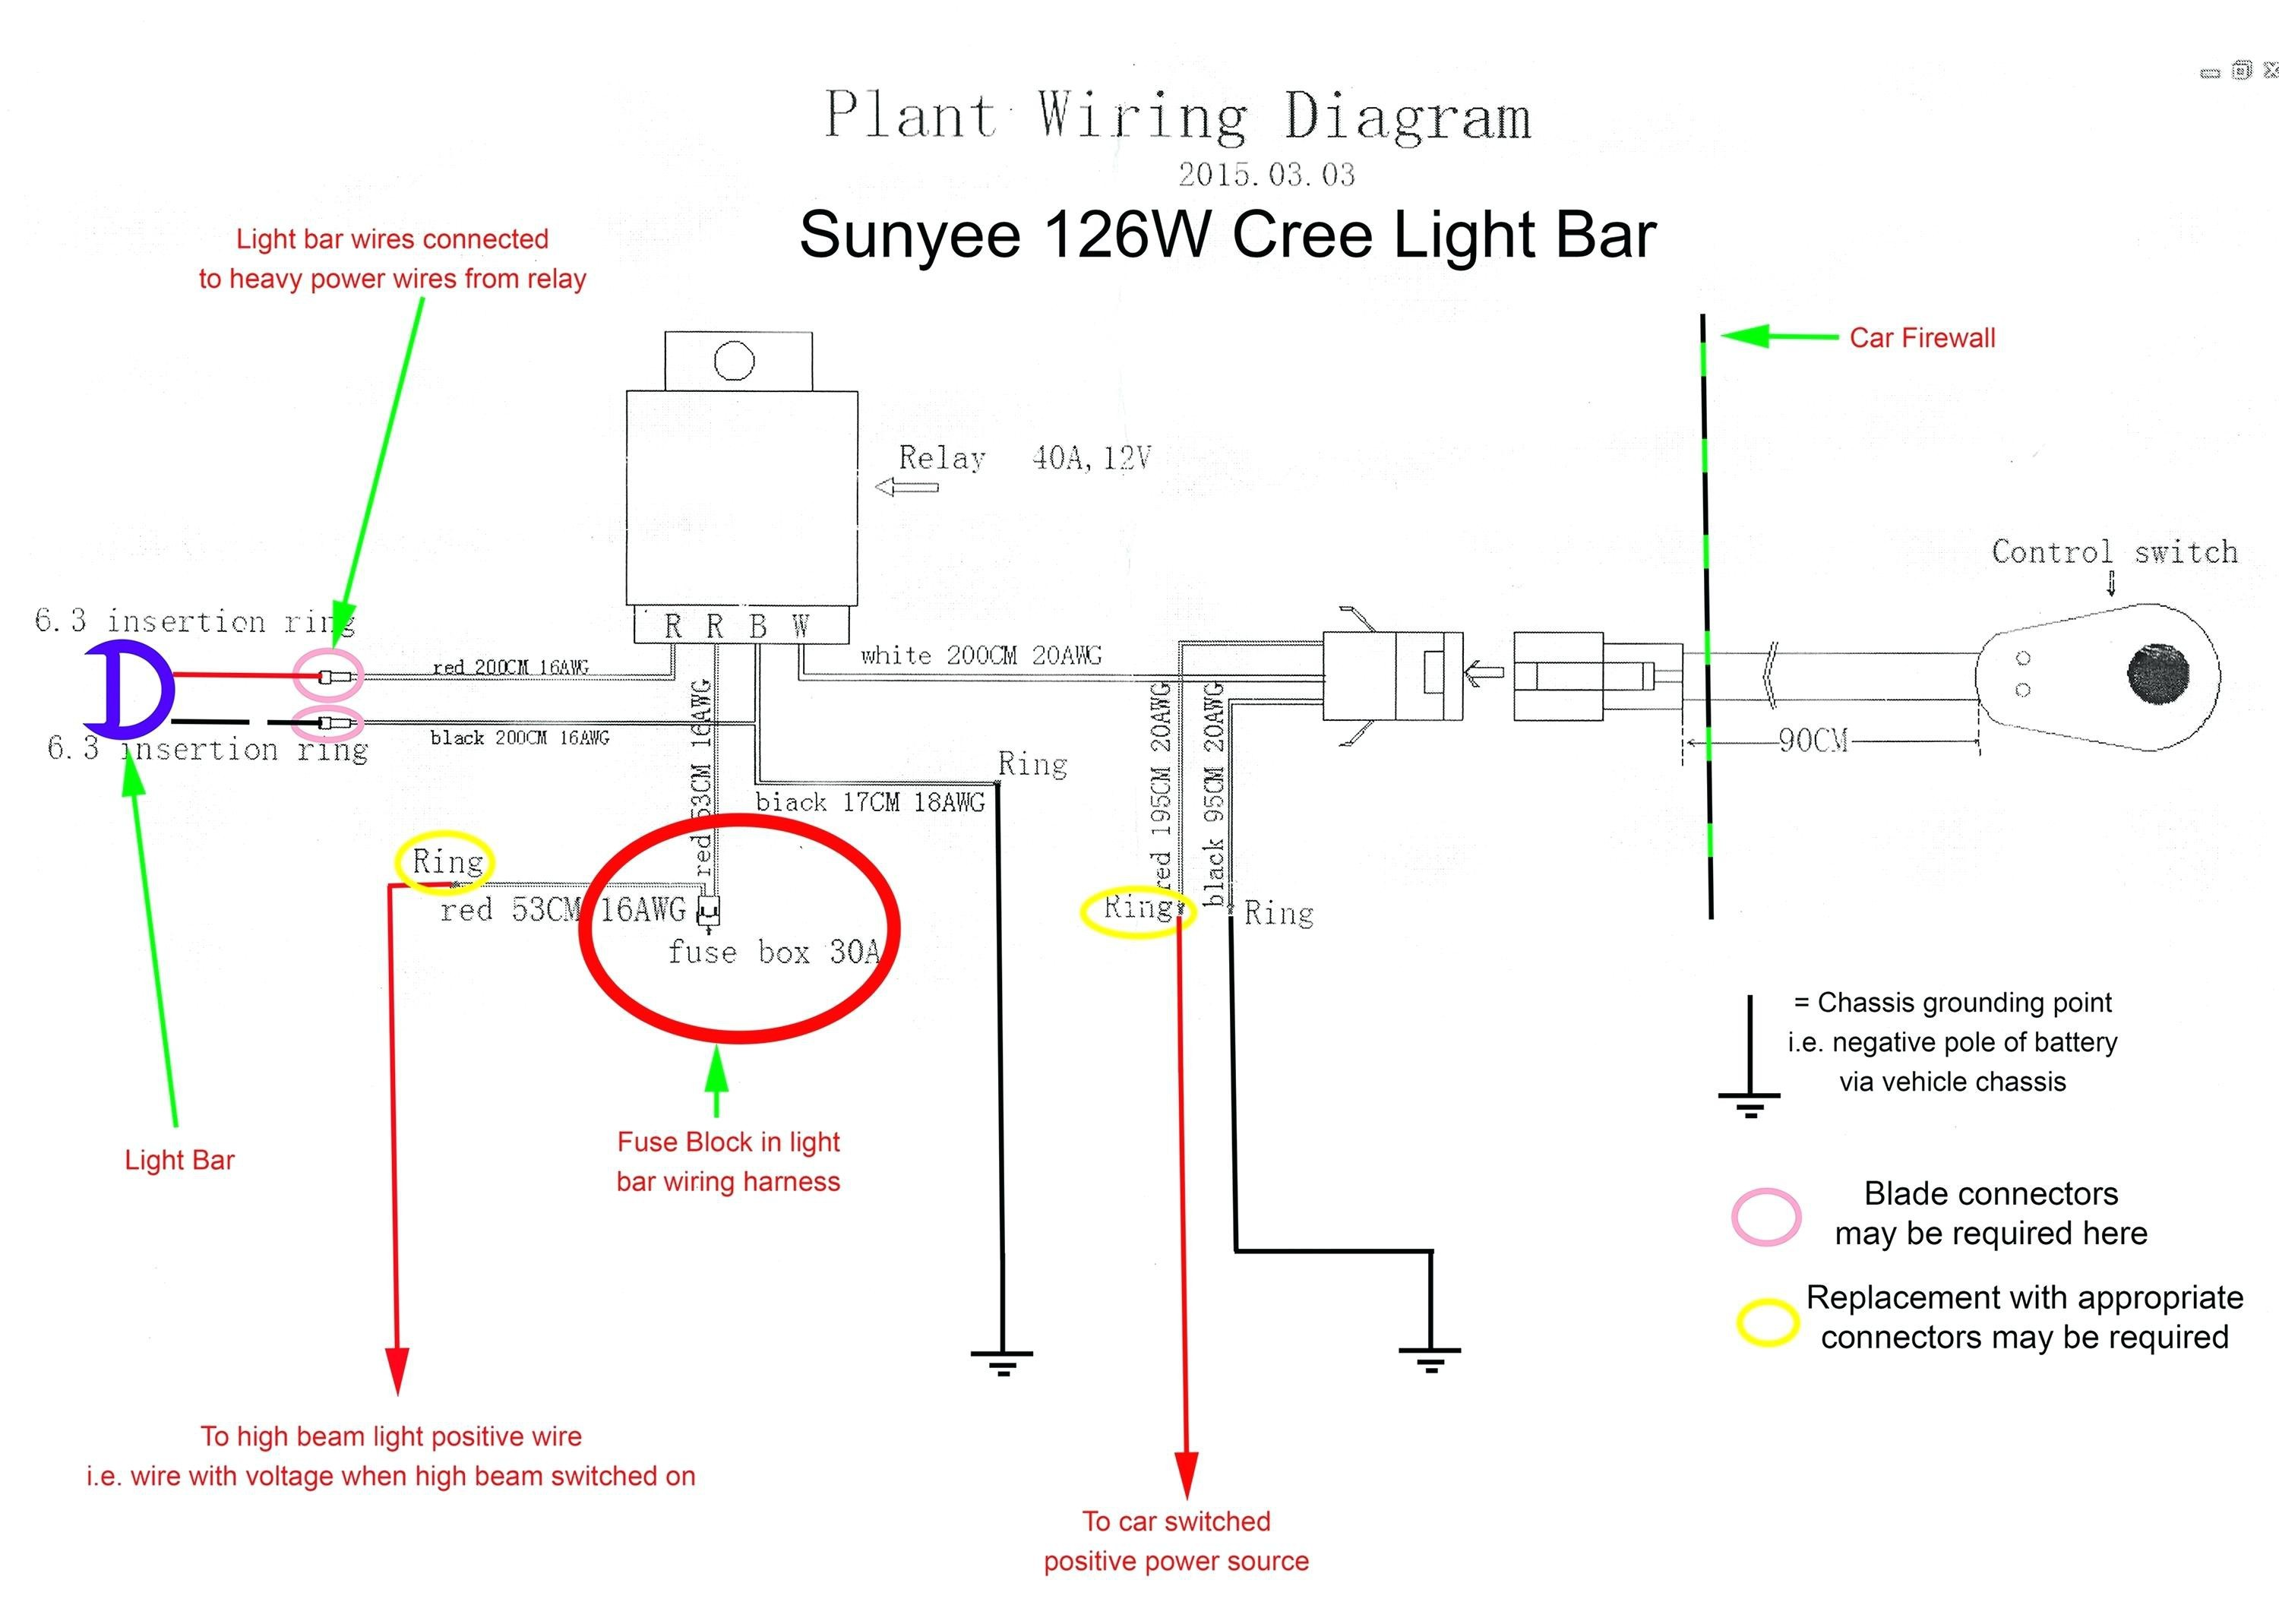 led t8 replacement wiring diagram free download auto electrical rh 6weeks co uk